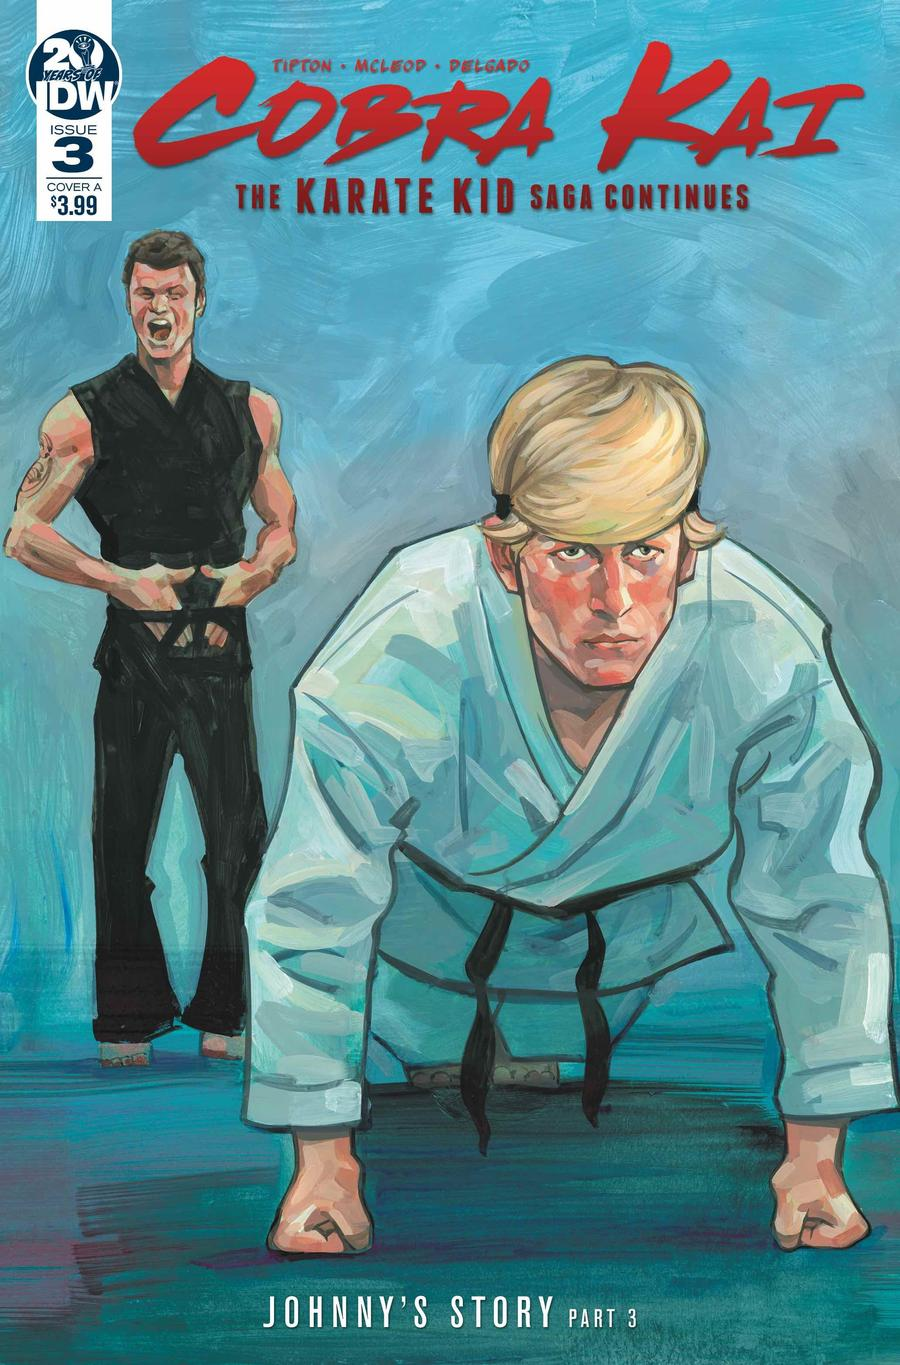 Cobra Kai Karate Kid Saga Continues #3 Cover A Regular Kagan McLeod Cover